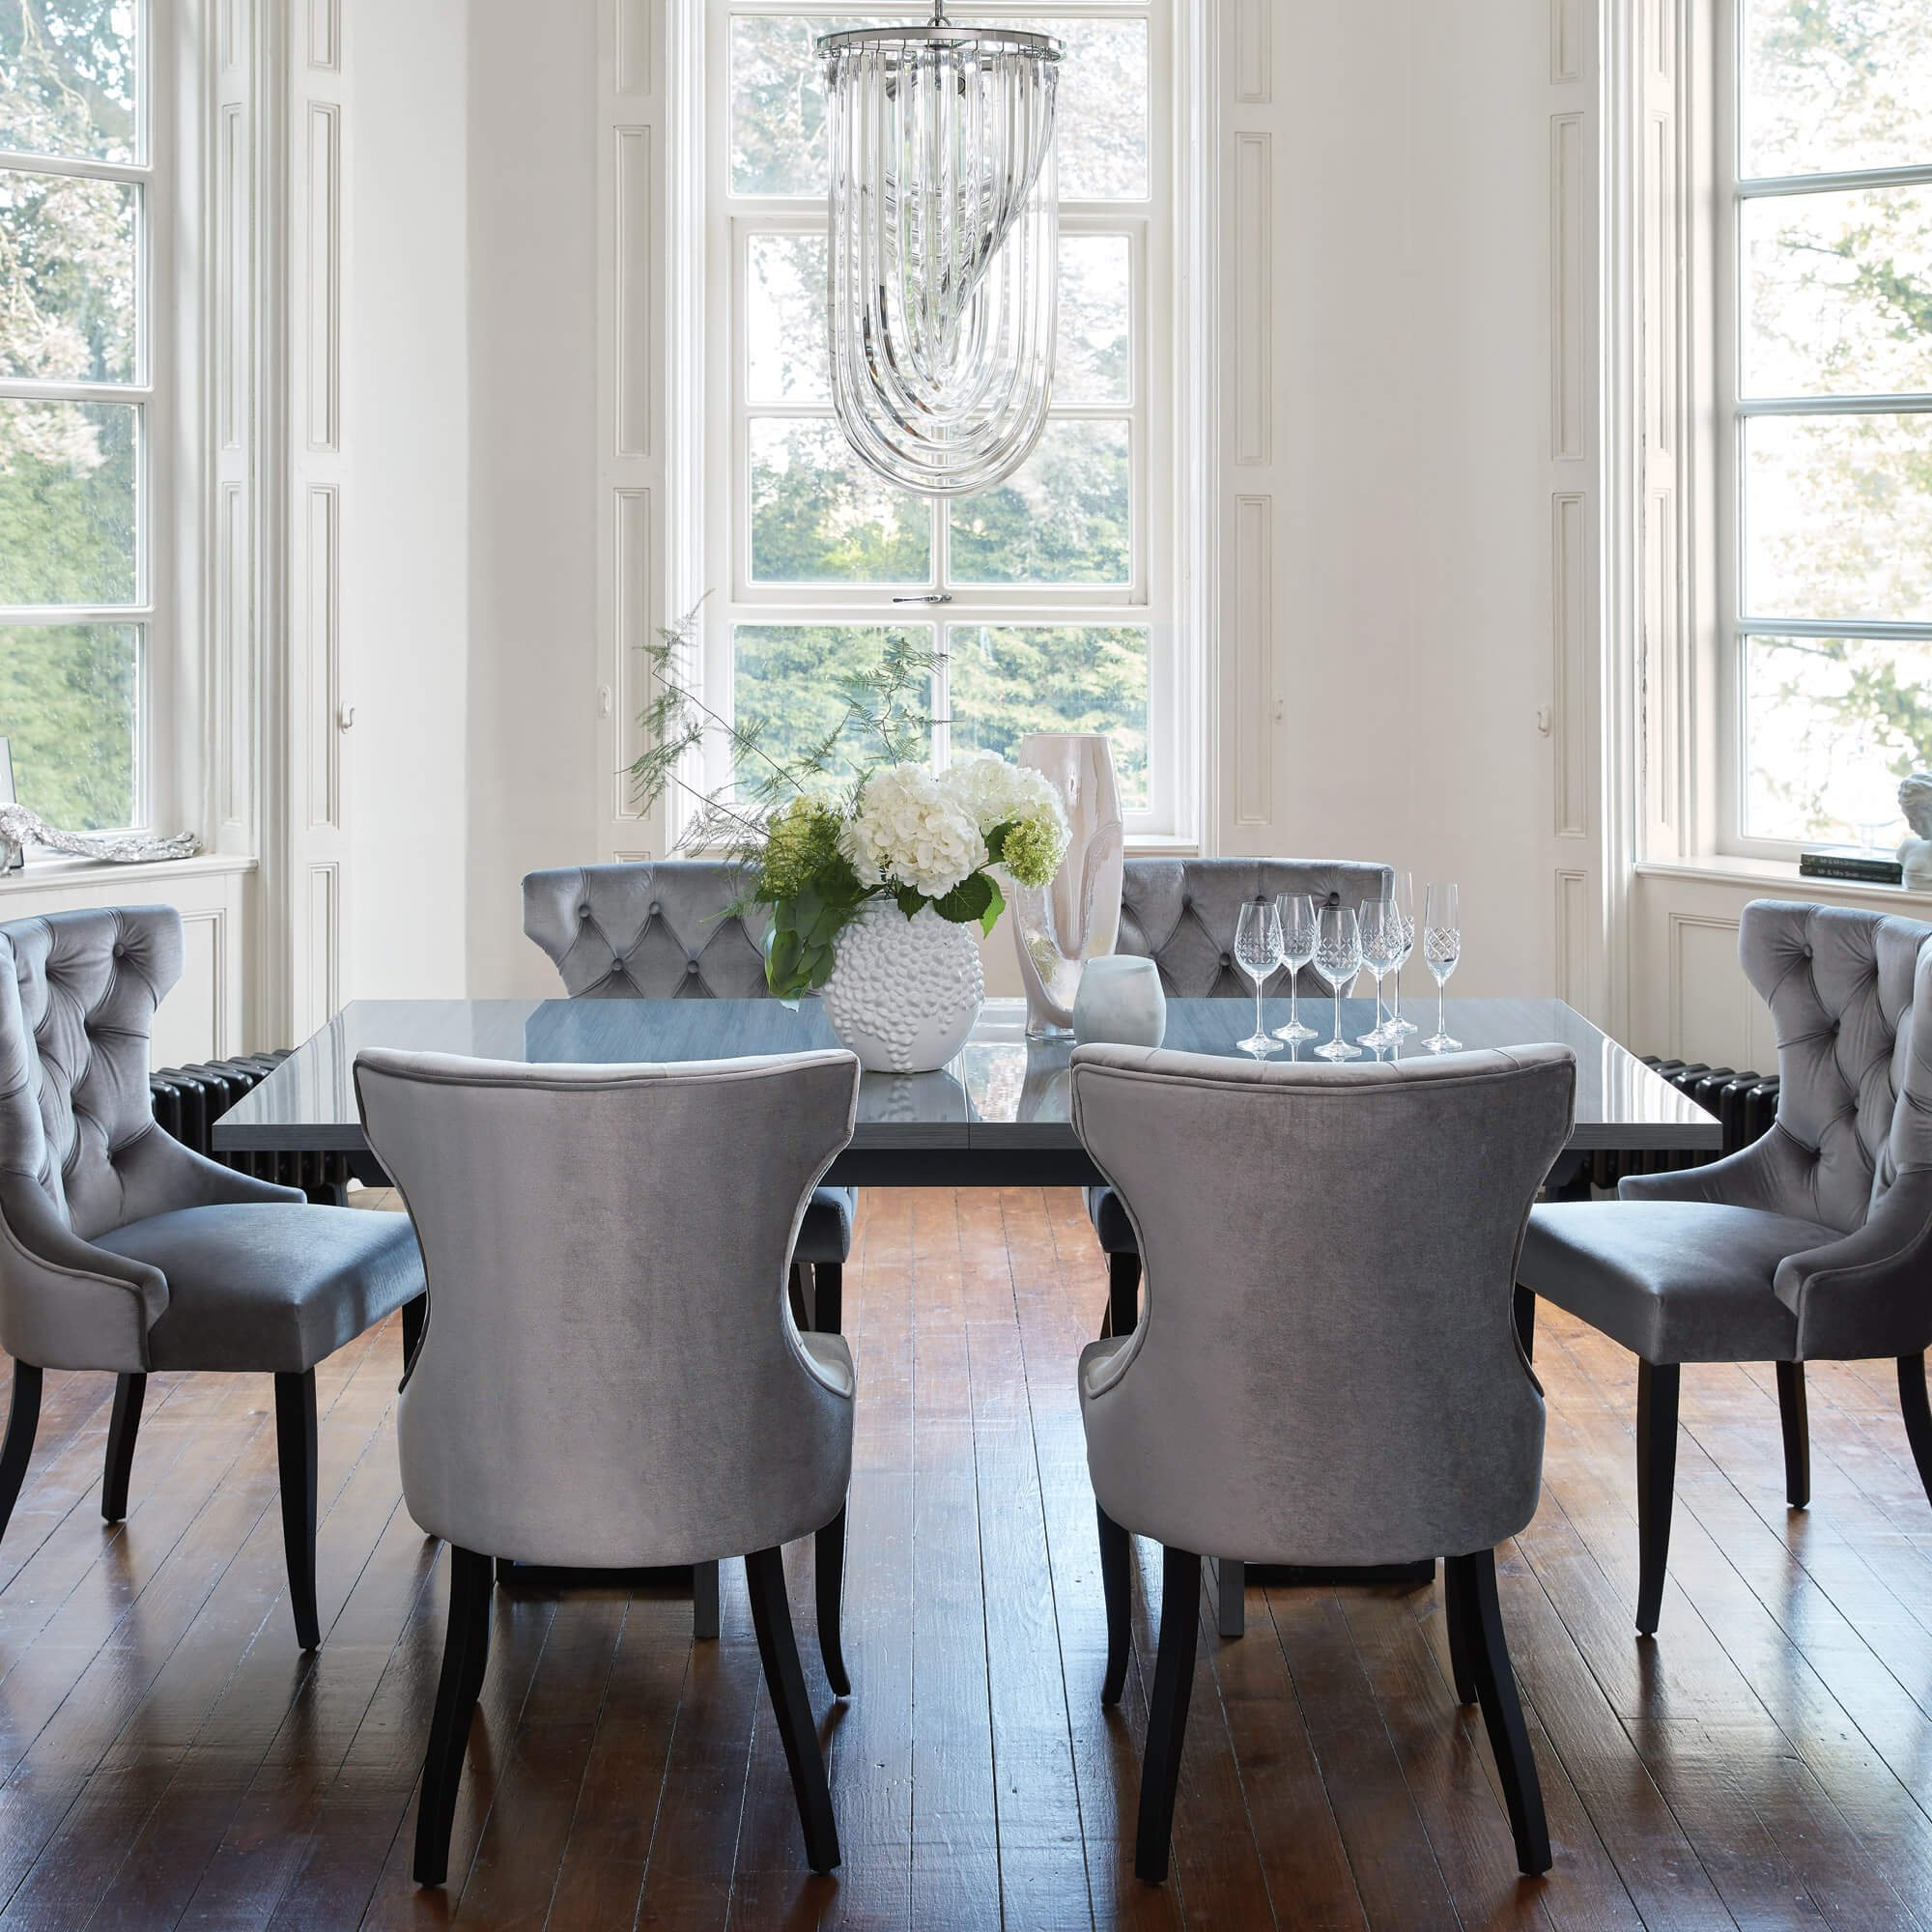 Housing Units - High Gloss Dining Table and Grey Chairs